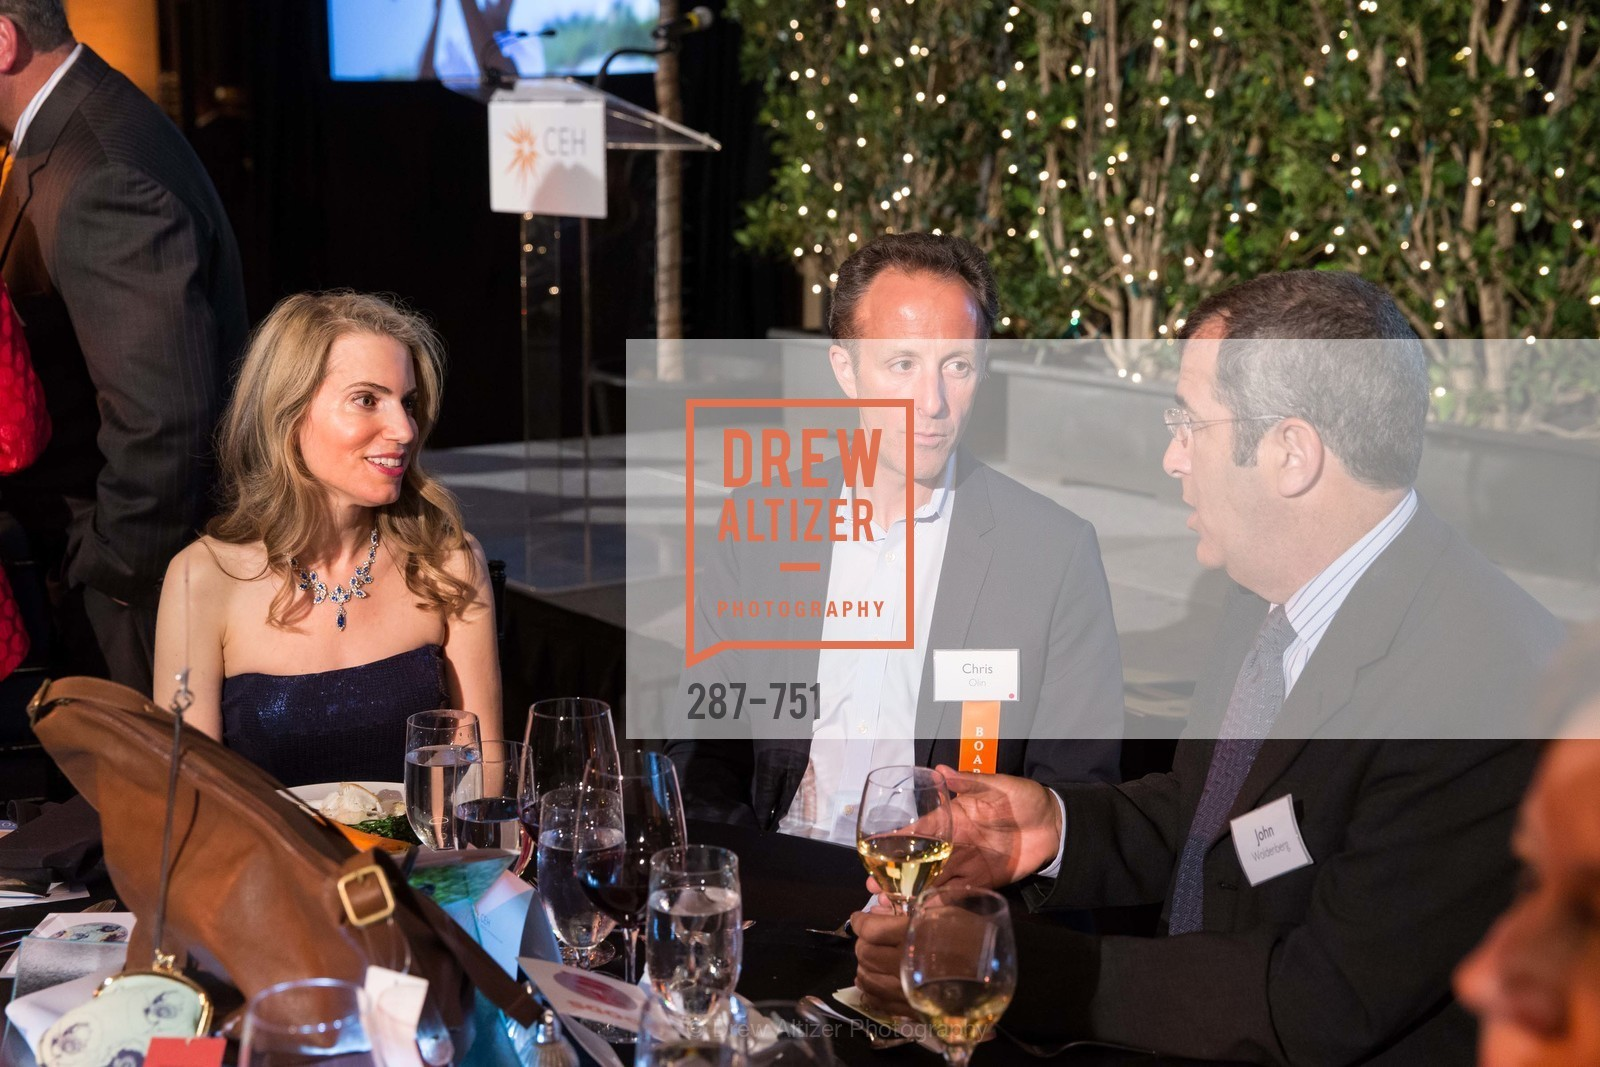 Nadine Weil, Chris Olin, John Woldenberg, CENTER FOR ENVIRONMENTAL HEALTH (CEH) 2015 Gala, US, May 28th, 2015,Drew Altizer, Drew Altizer Photography, full-service agency, private events, San Francisco photographer, photographer california